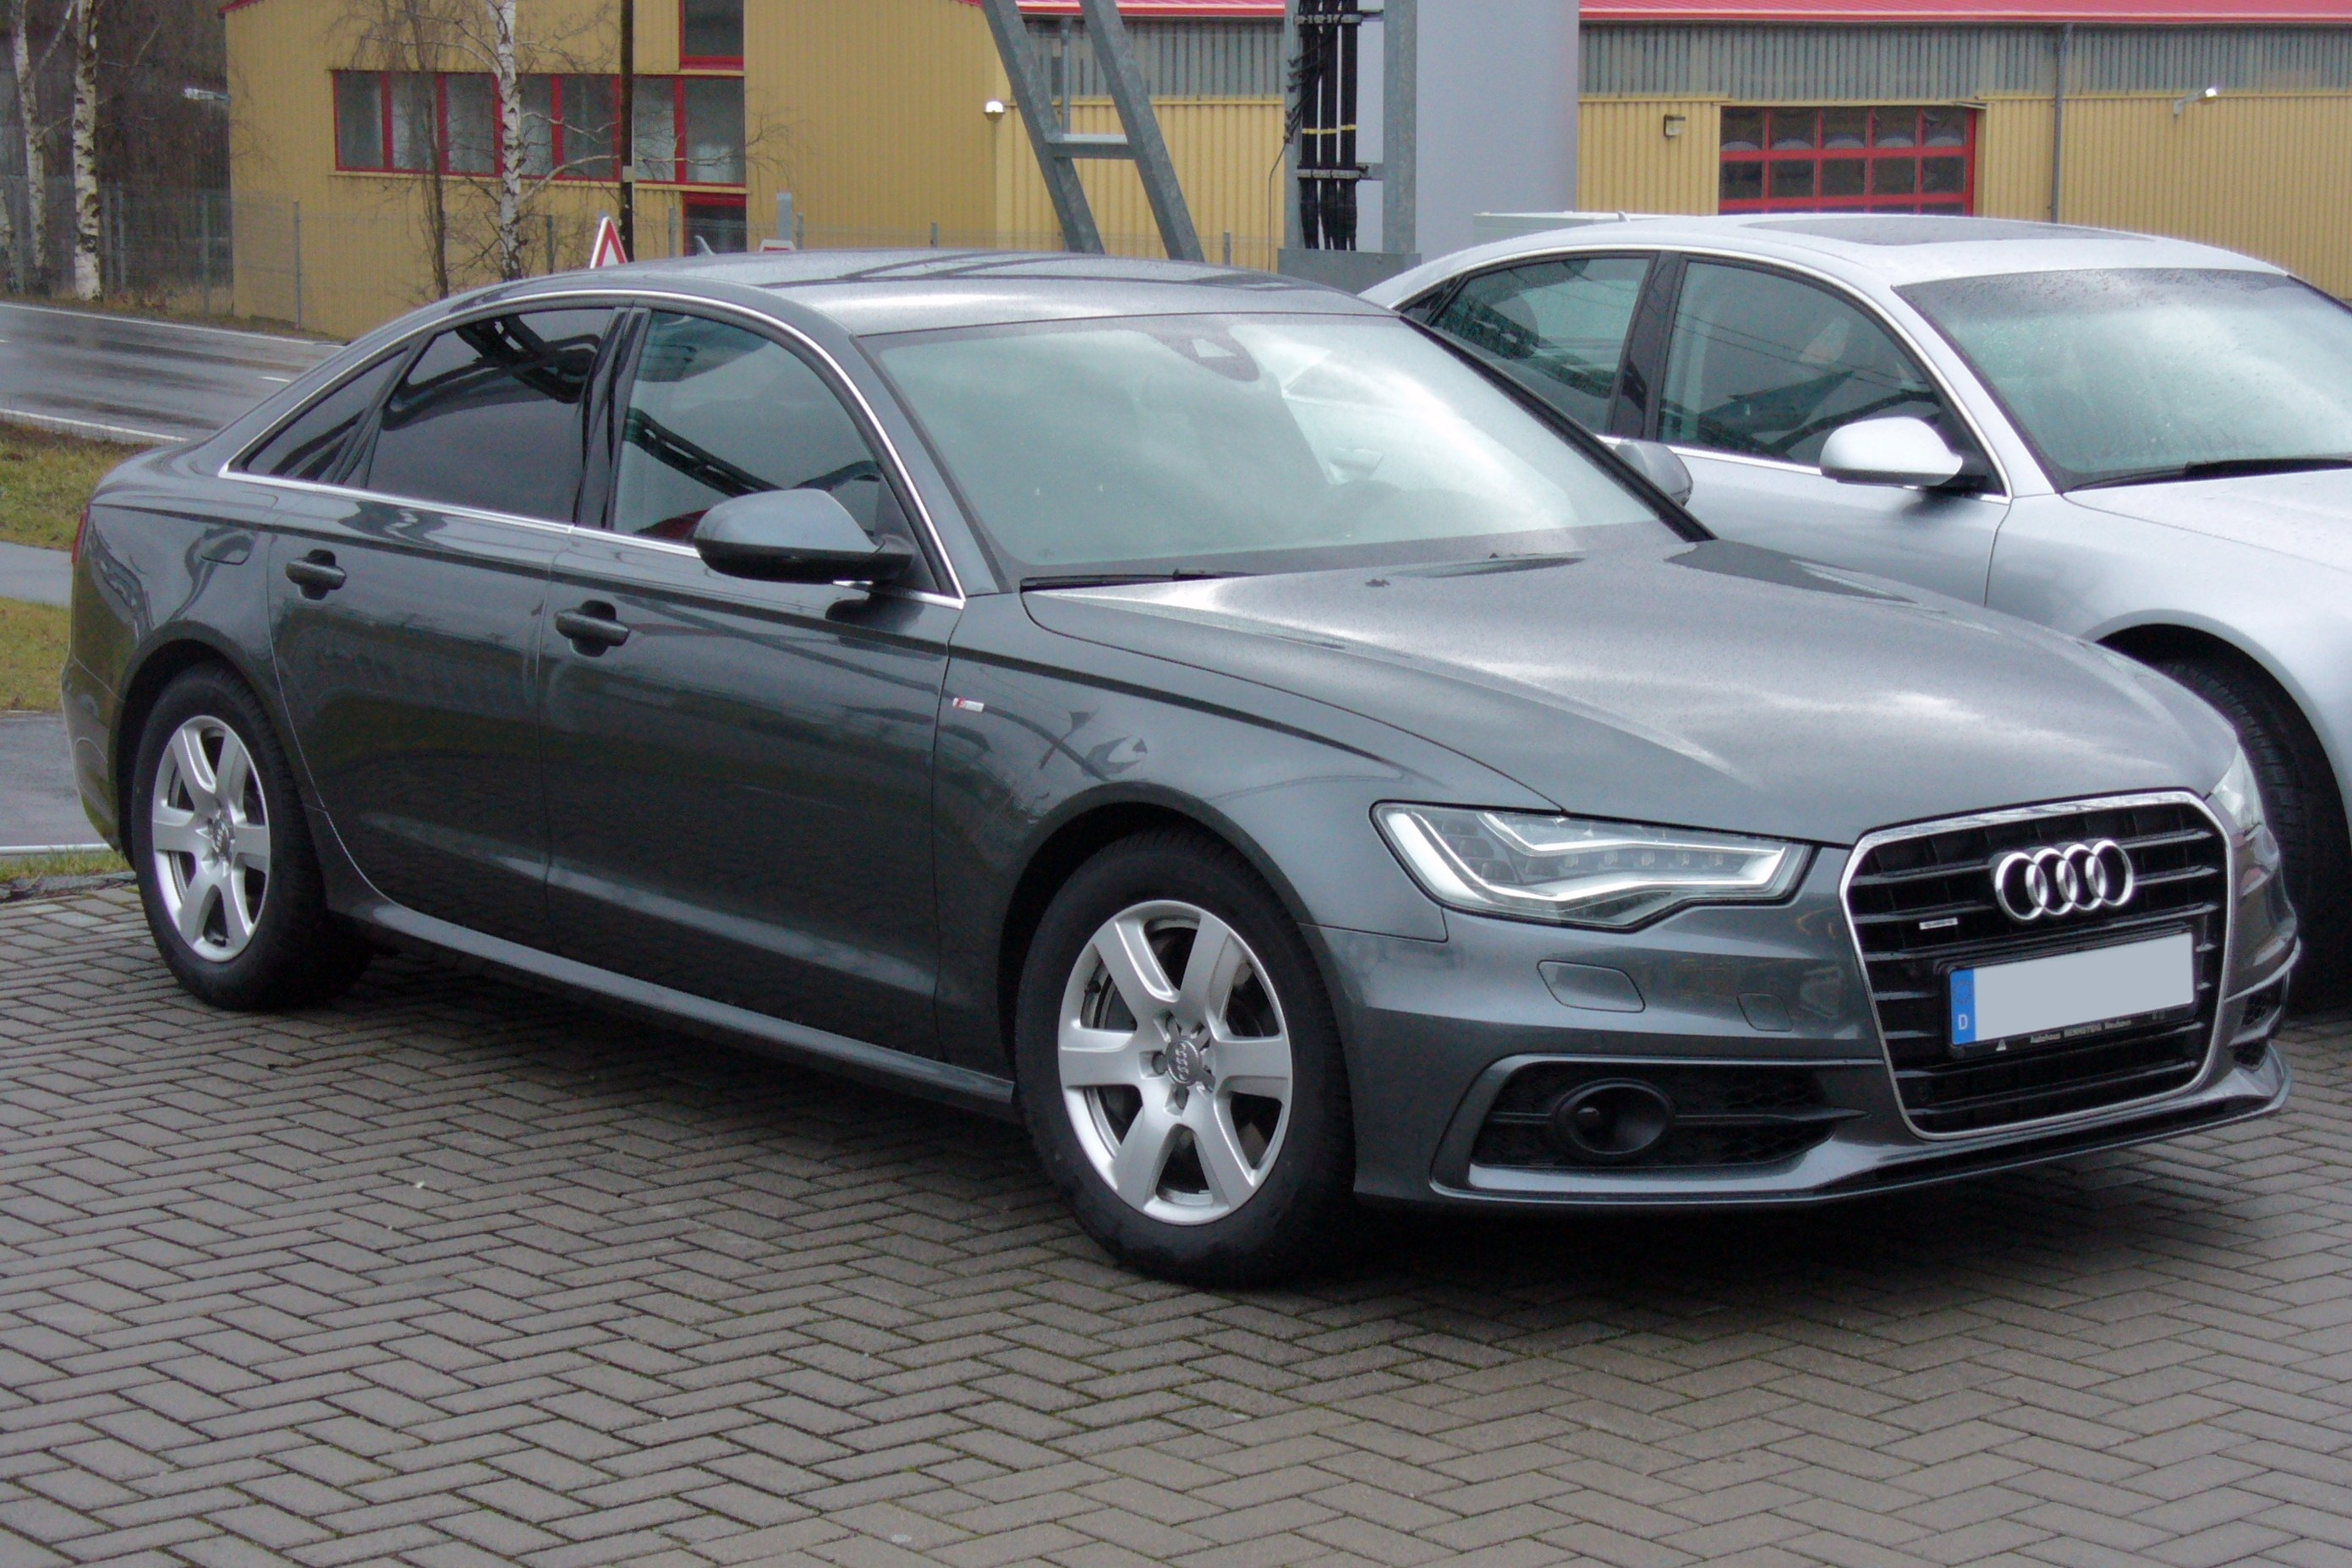 2016 audi a6 avant c7 pictures information and specs. Black Bedroom Furniture Sets. Home Design Ideas